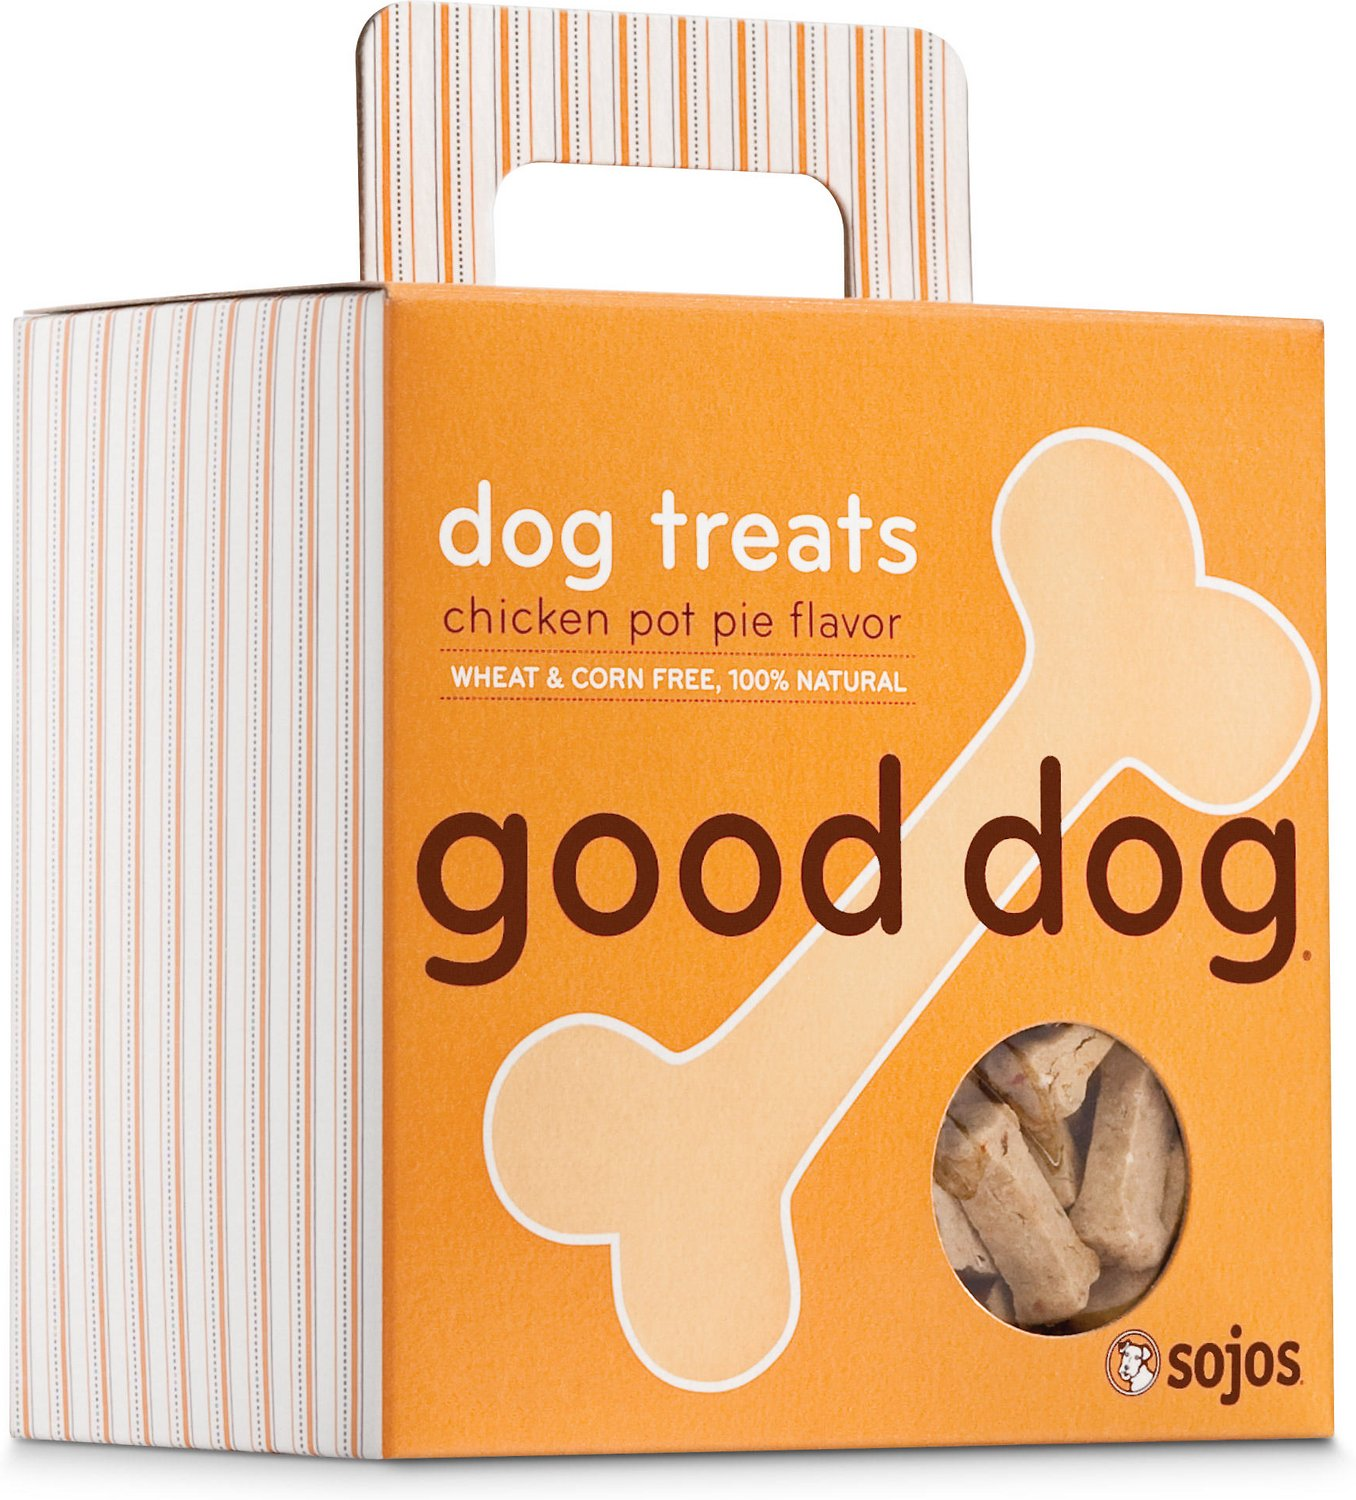 Sojos Good Dog Chicken Pot Pie Flavor Dog Treats, 8-oz box